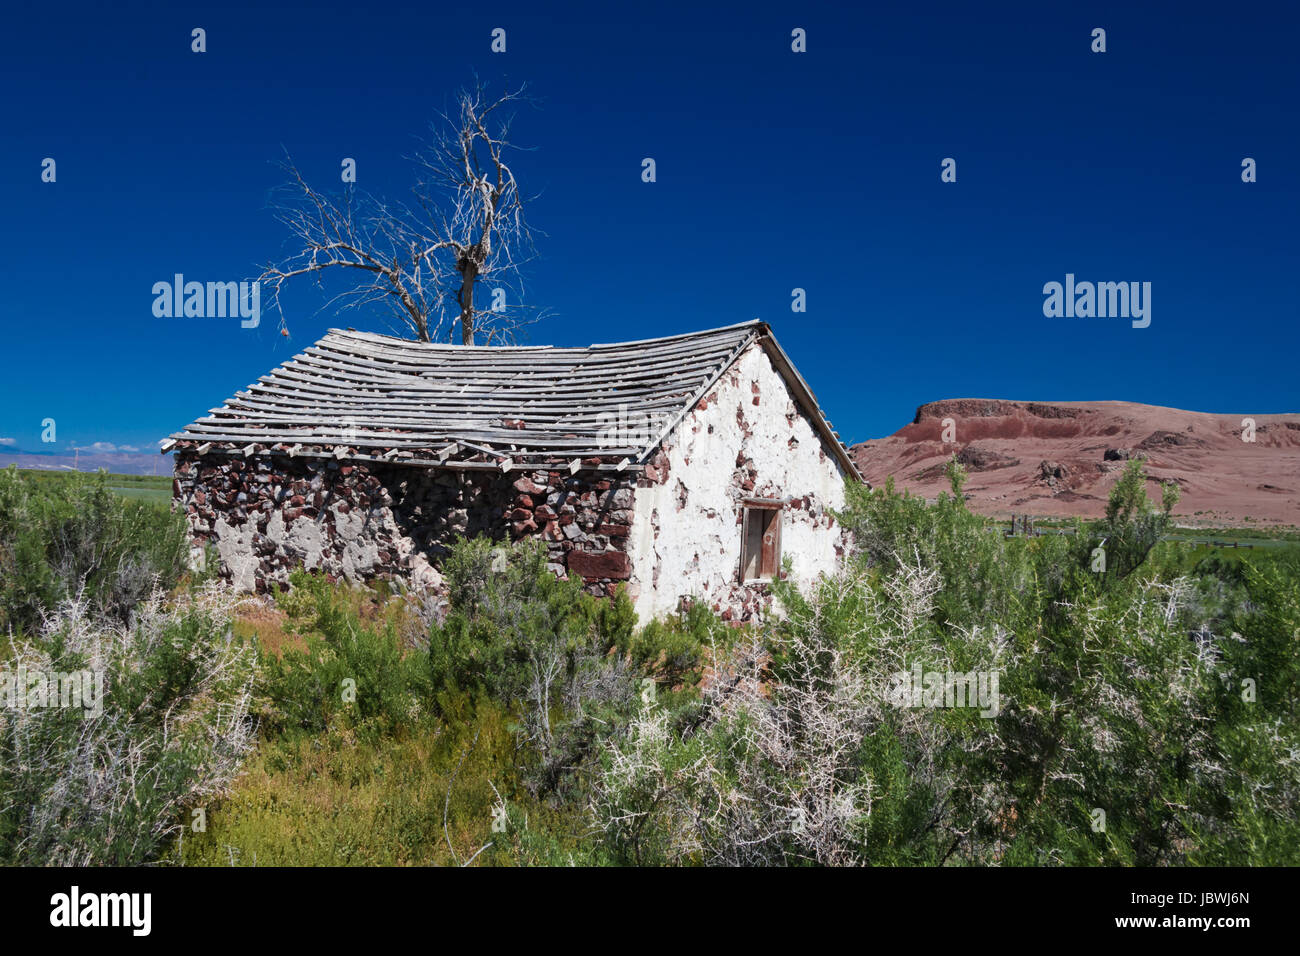 Old stone built homestead of the early 1900's, alone in a vast desert area. perfect for this arid dry country. - Stock Image